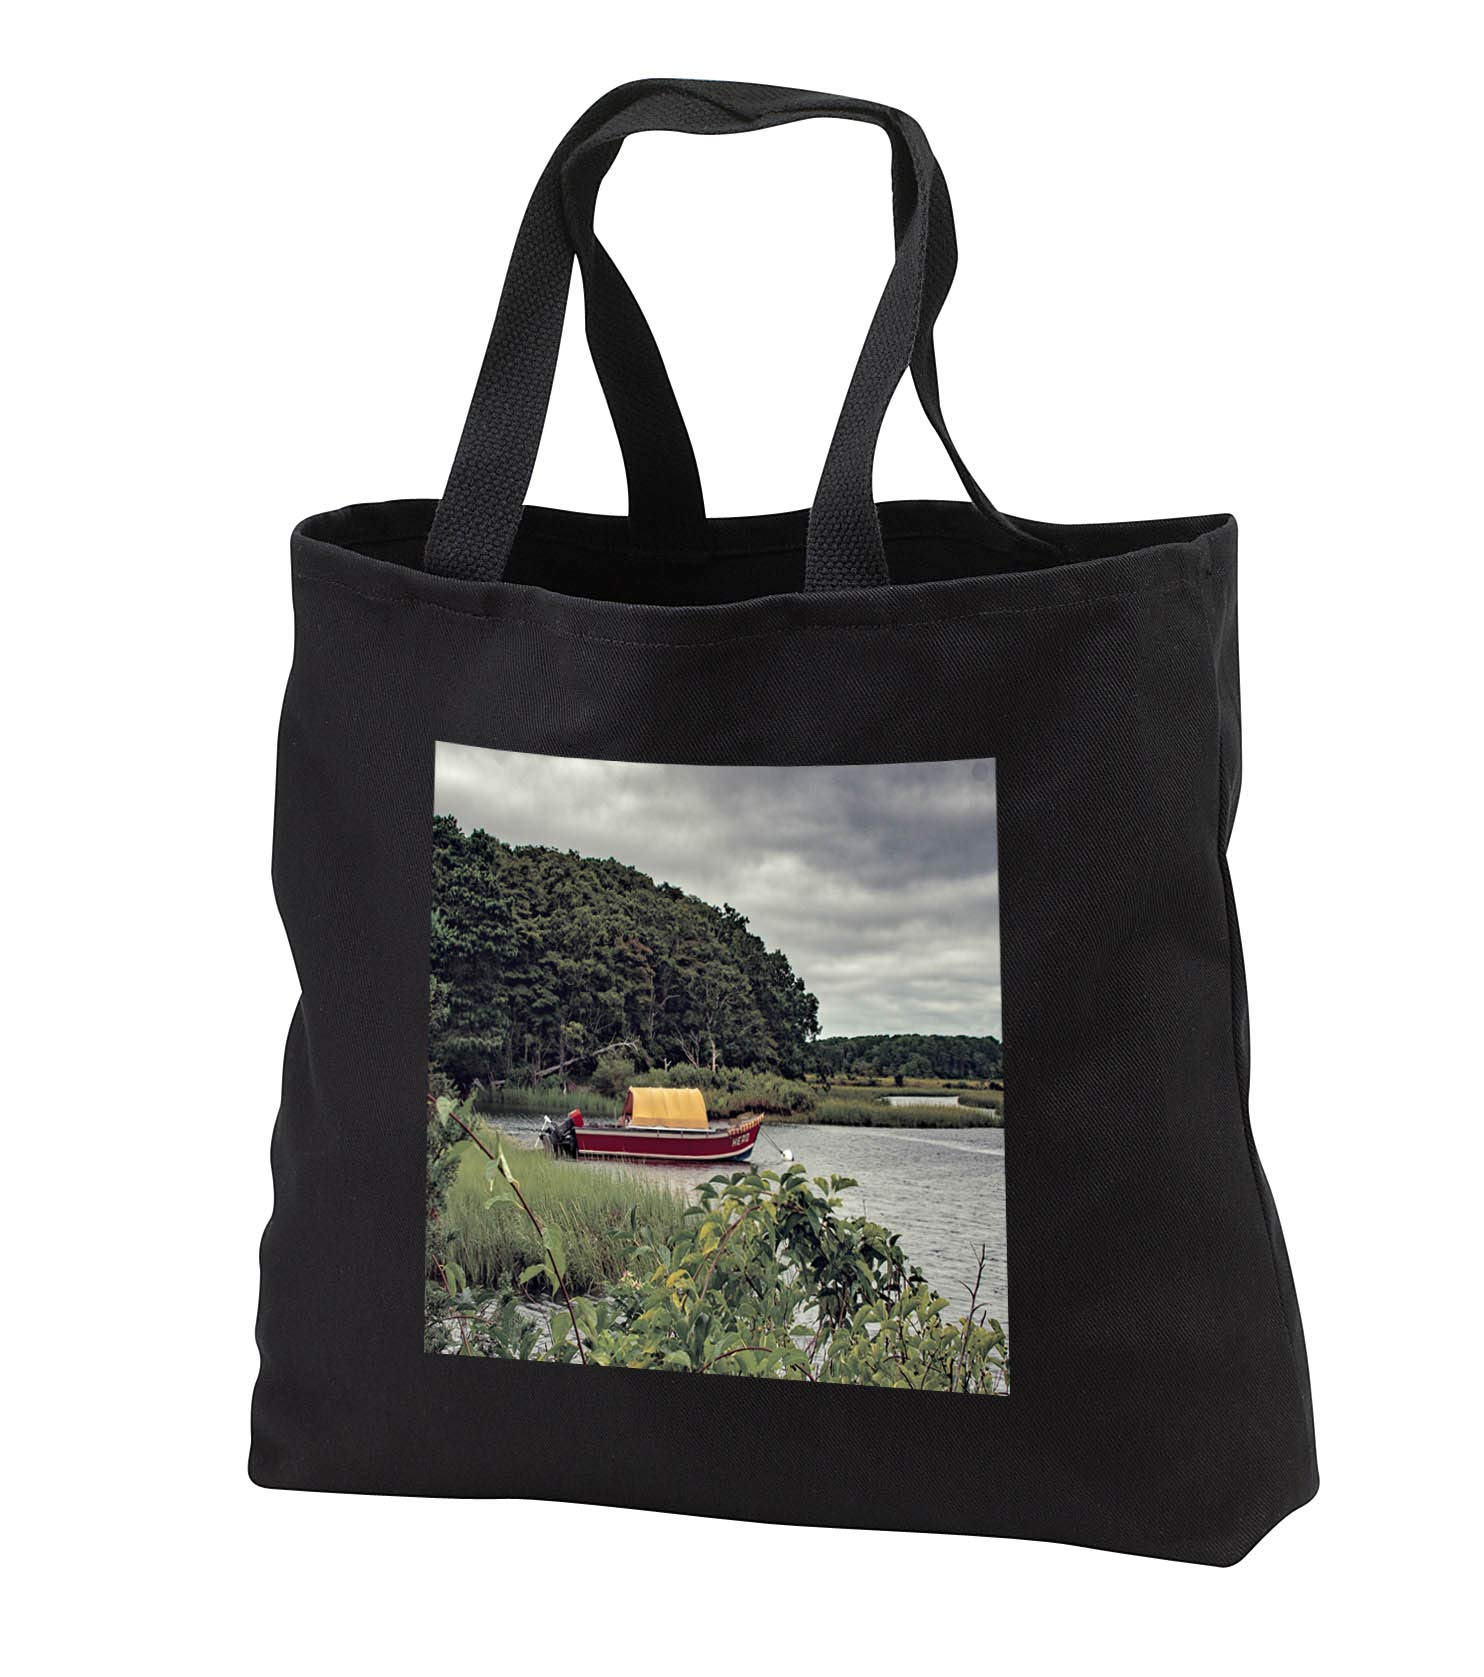 Roni Chastain Photography - Red boat - Tote Bags - Black Tote Bag 14w x 14h x 3d (tb_295327_1)